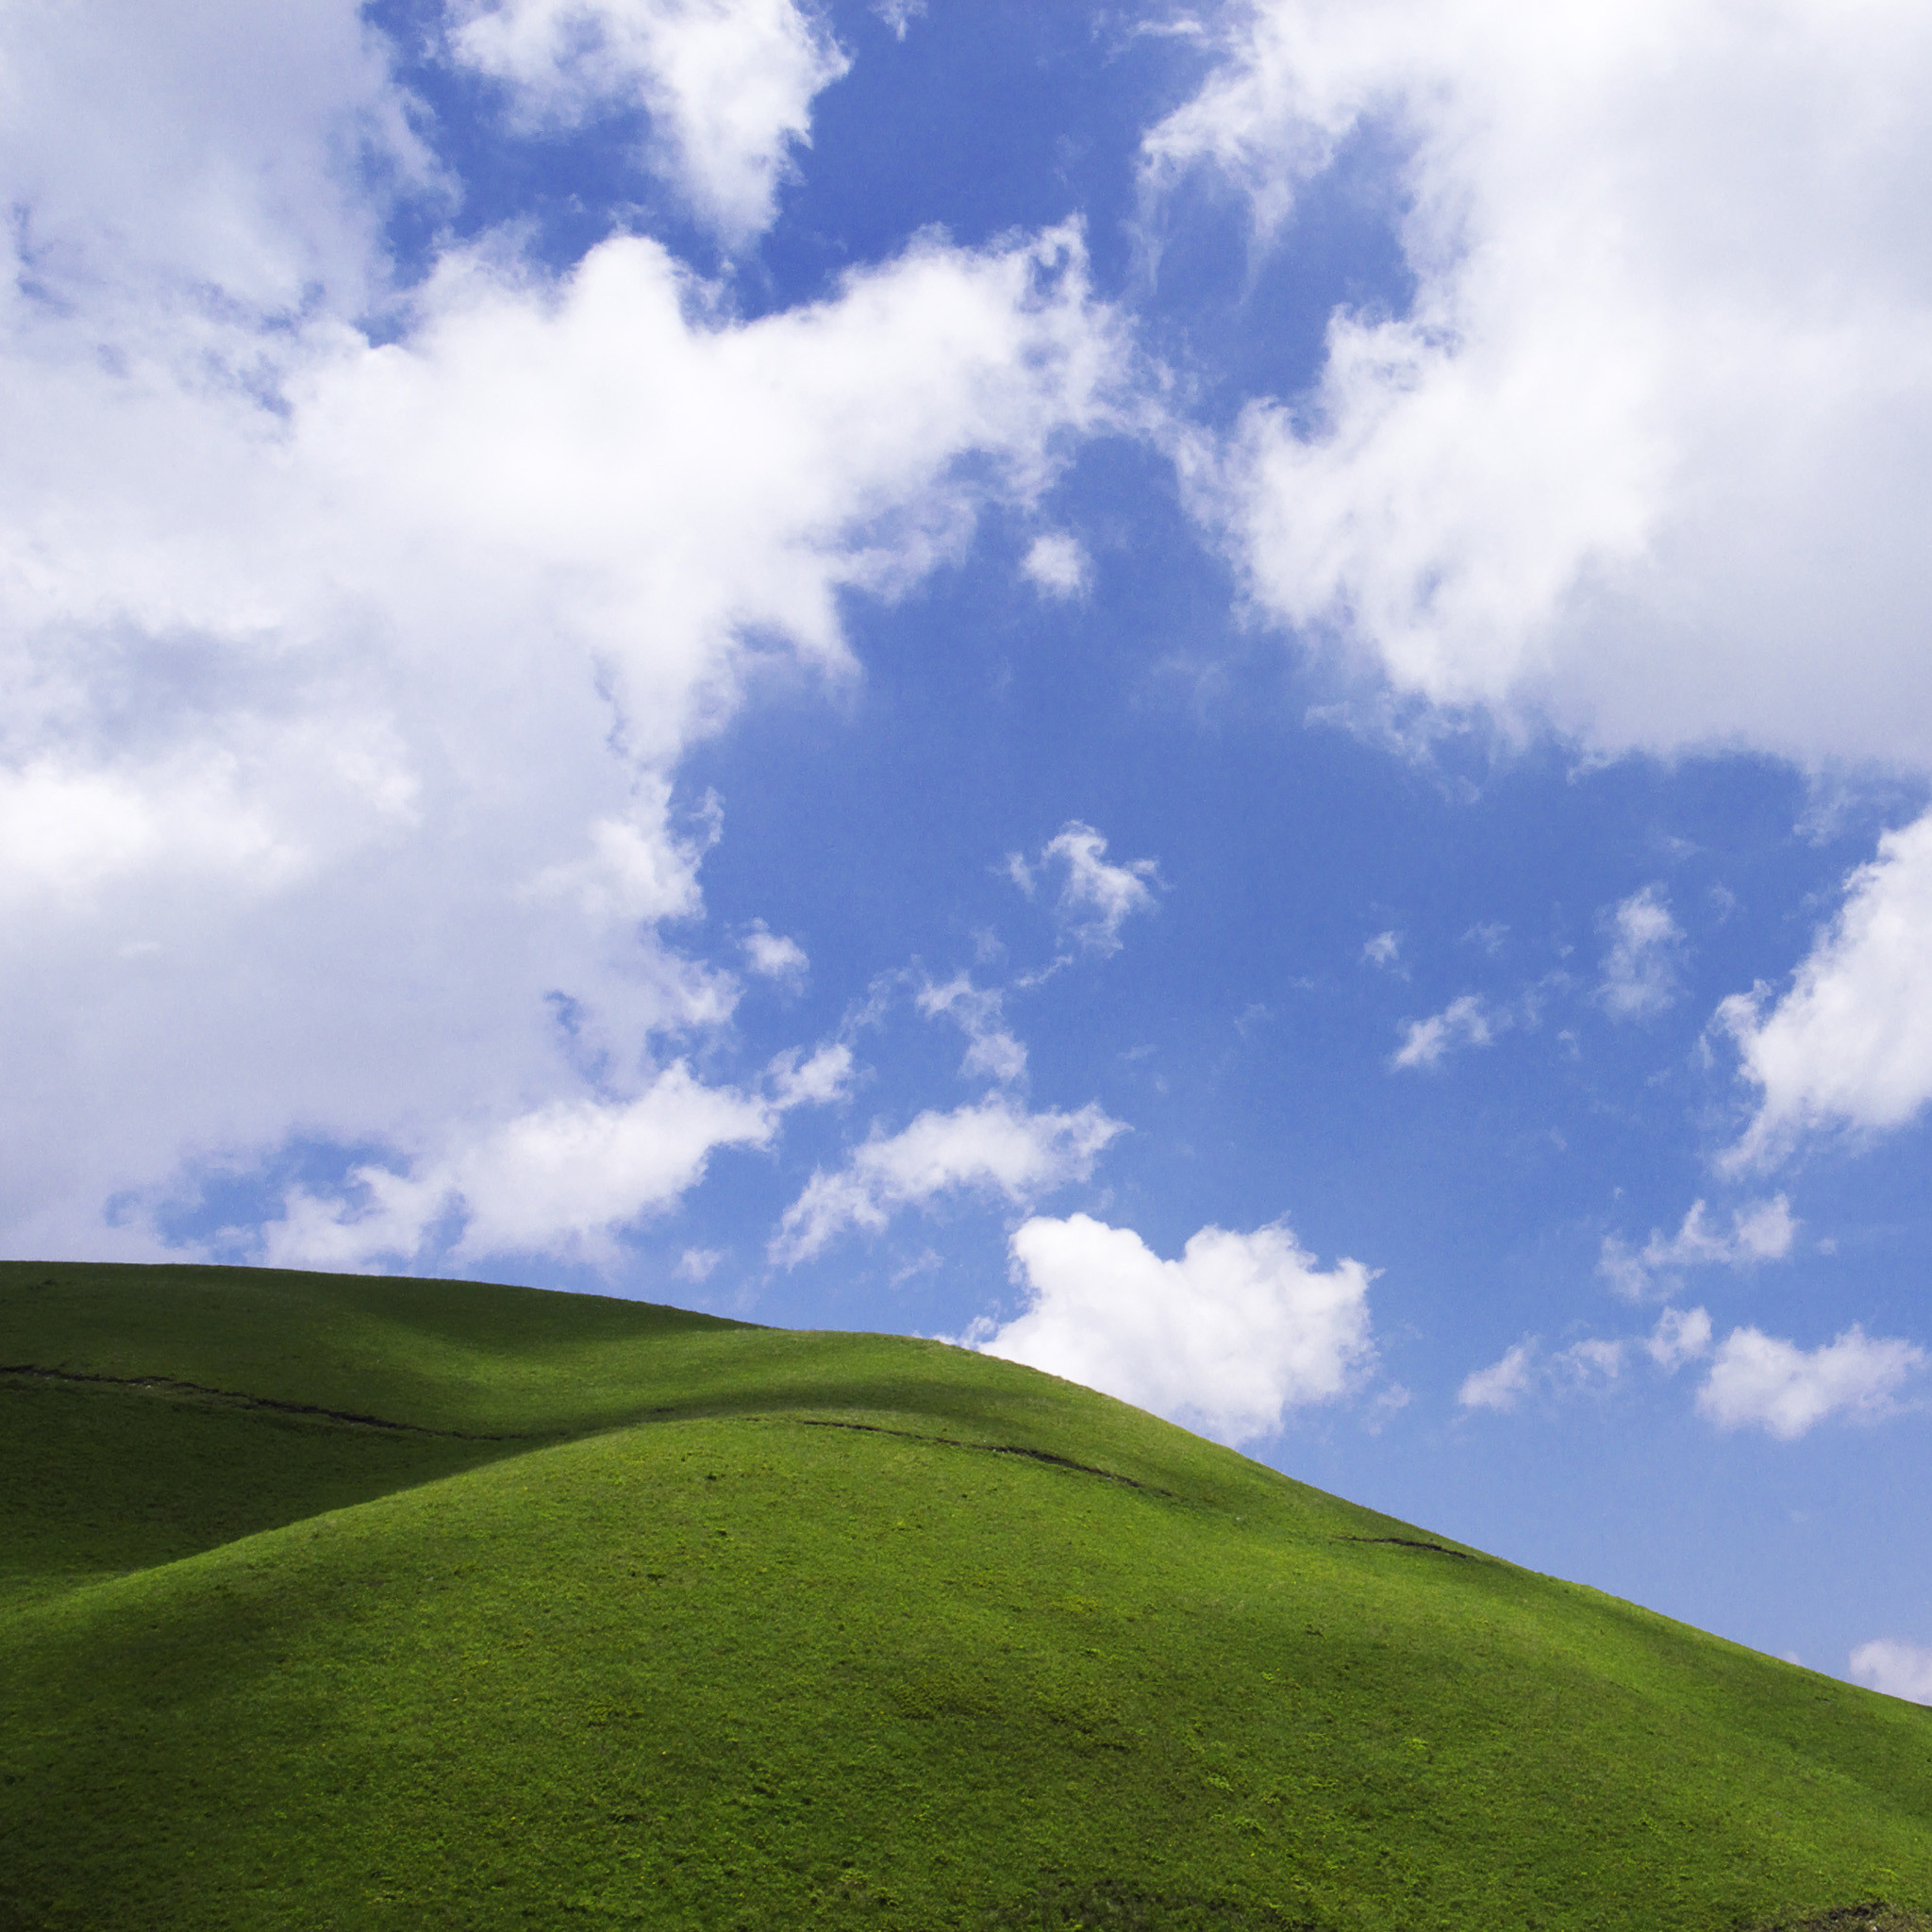 Grass And Sky Wallpaper (71+ Images